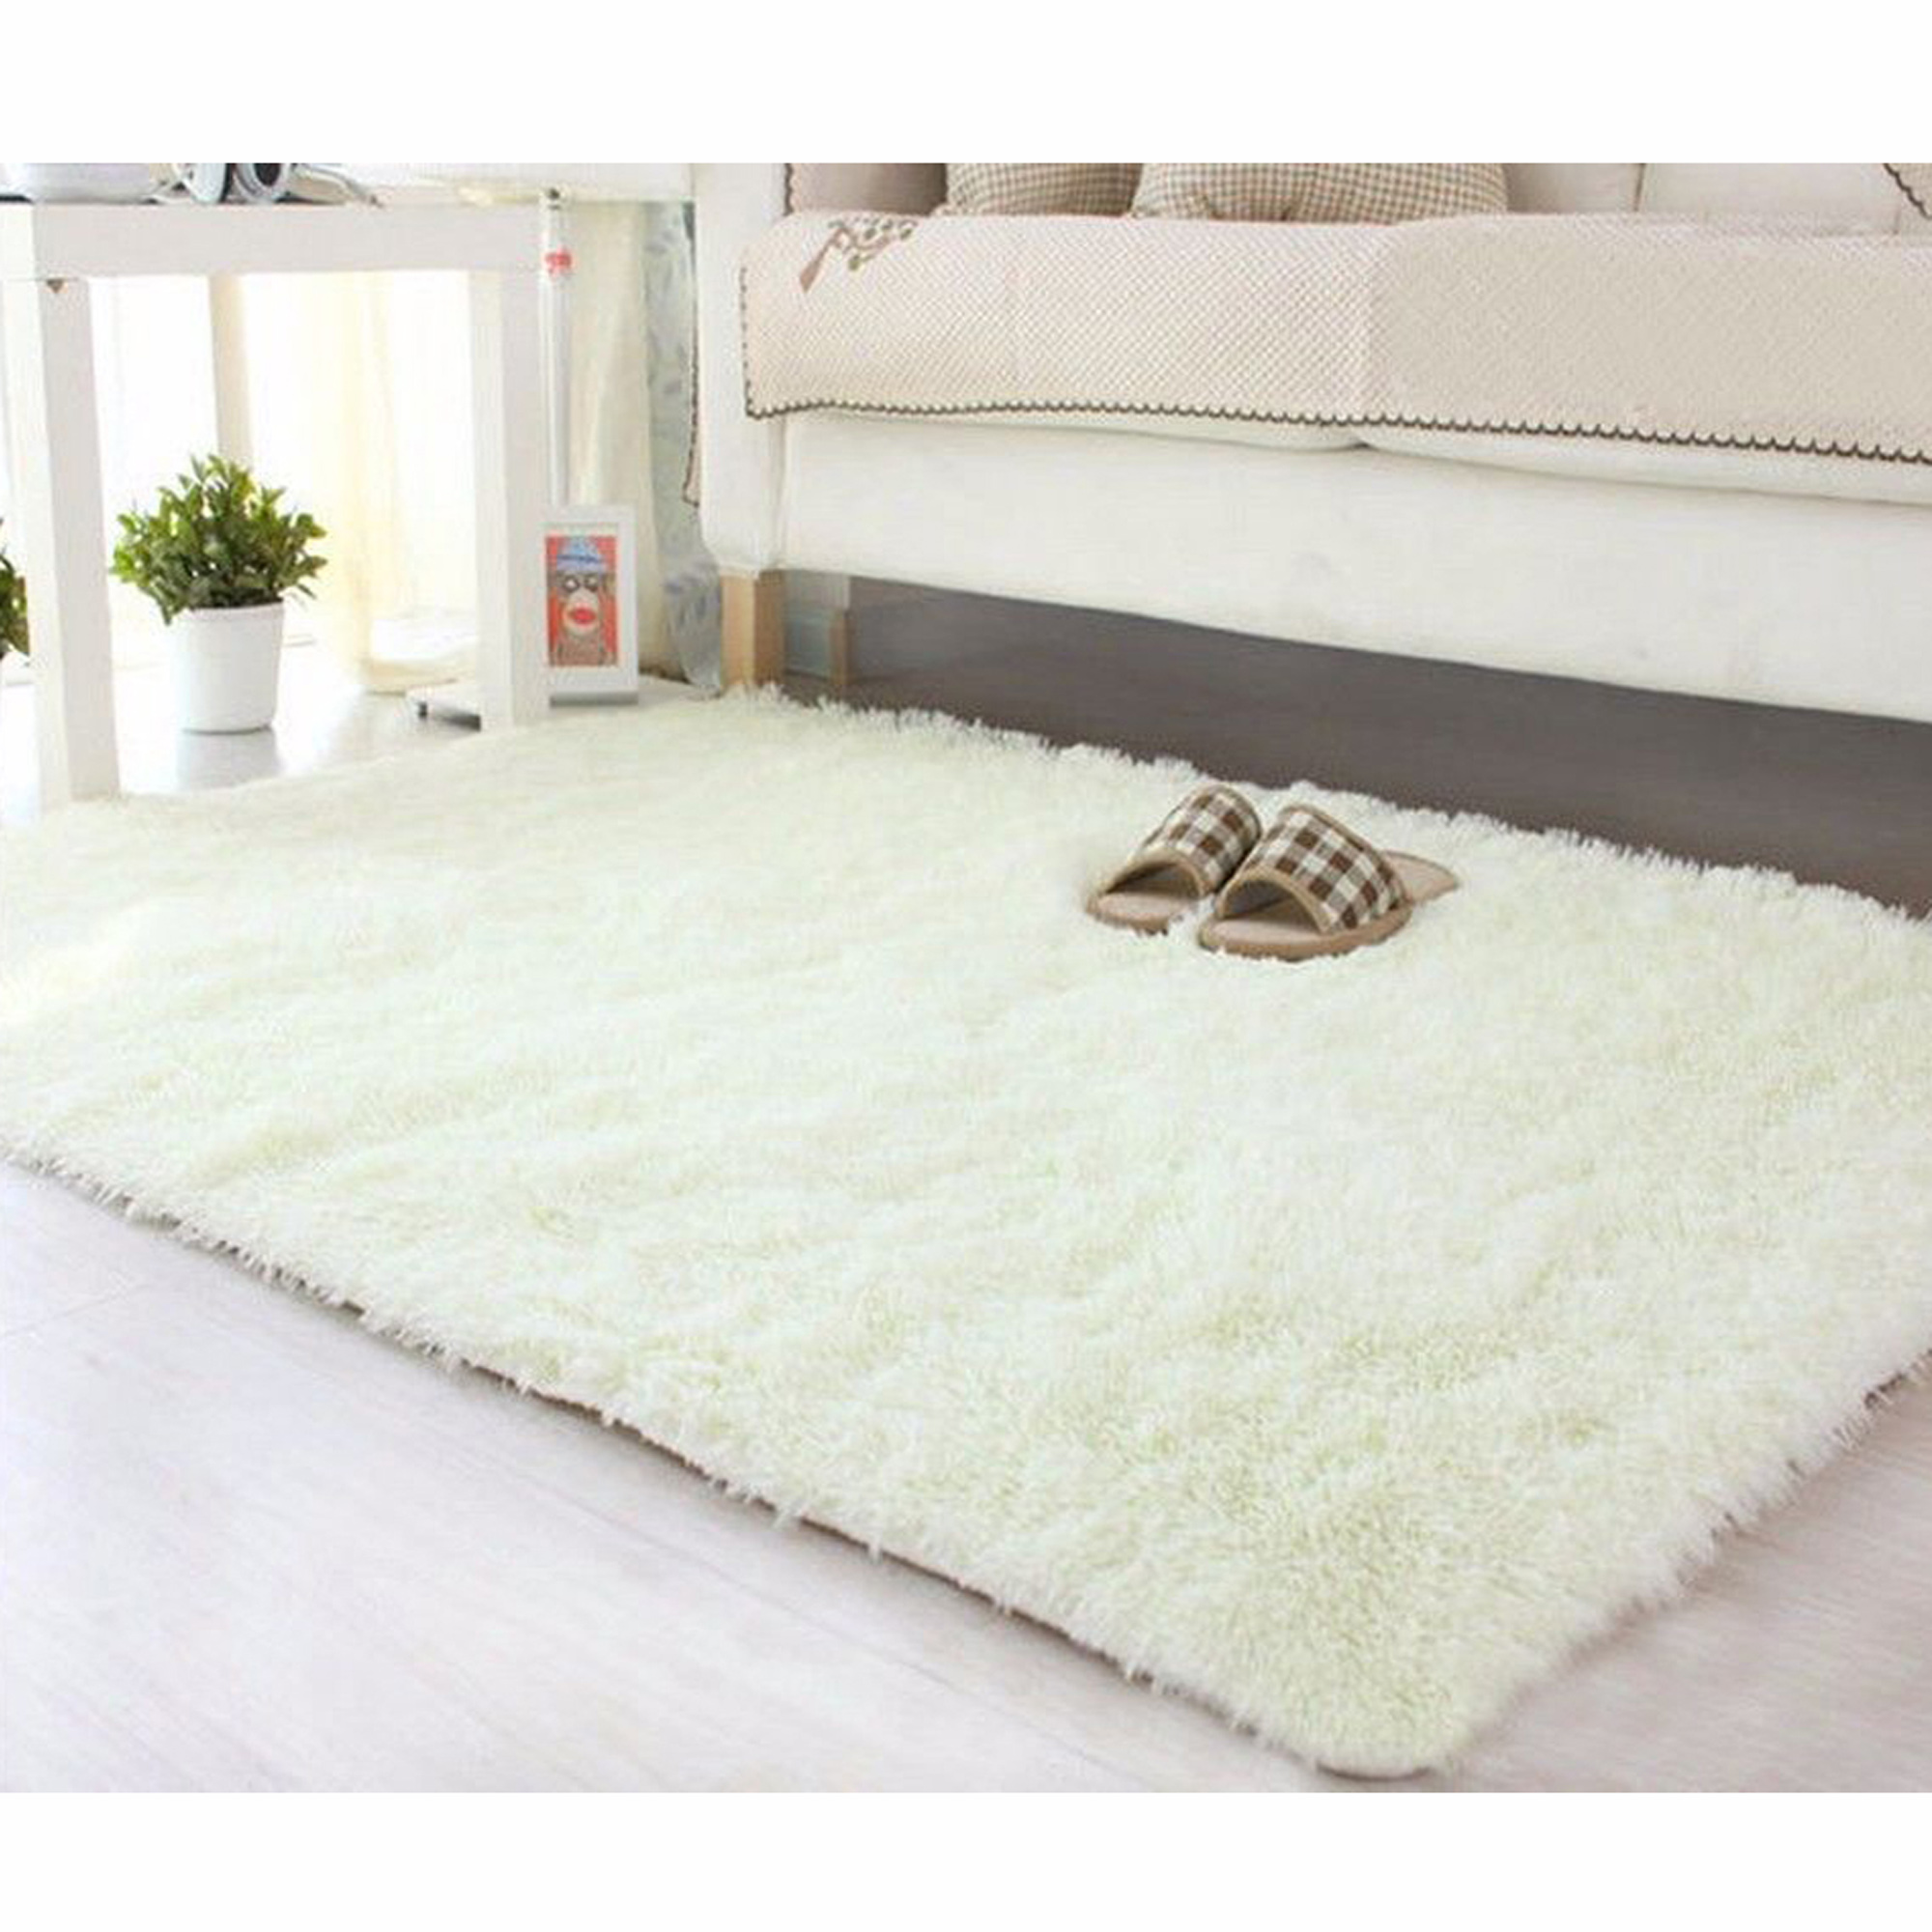 NK HOME 16''x24'' Ultra Soft Rectangular Area Rug Fluffy Carpet Fashion Color Fluffy Rugs Anti-slip Nursery Rug for Bedroom Girls Room Home Decoration Grey Pink Blue